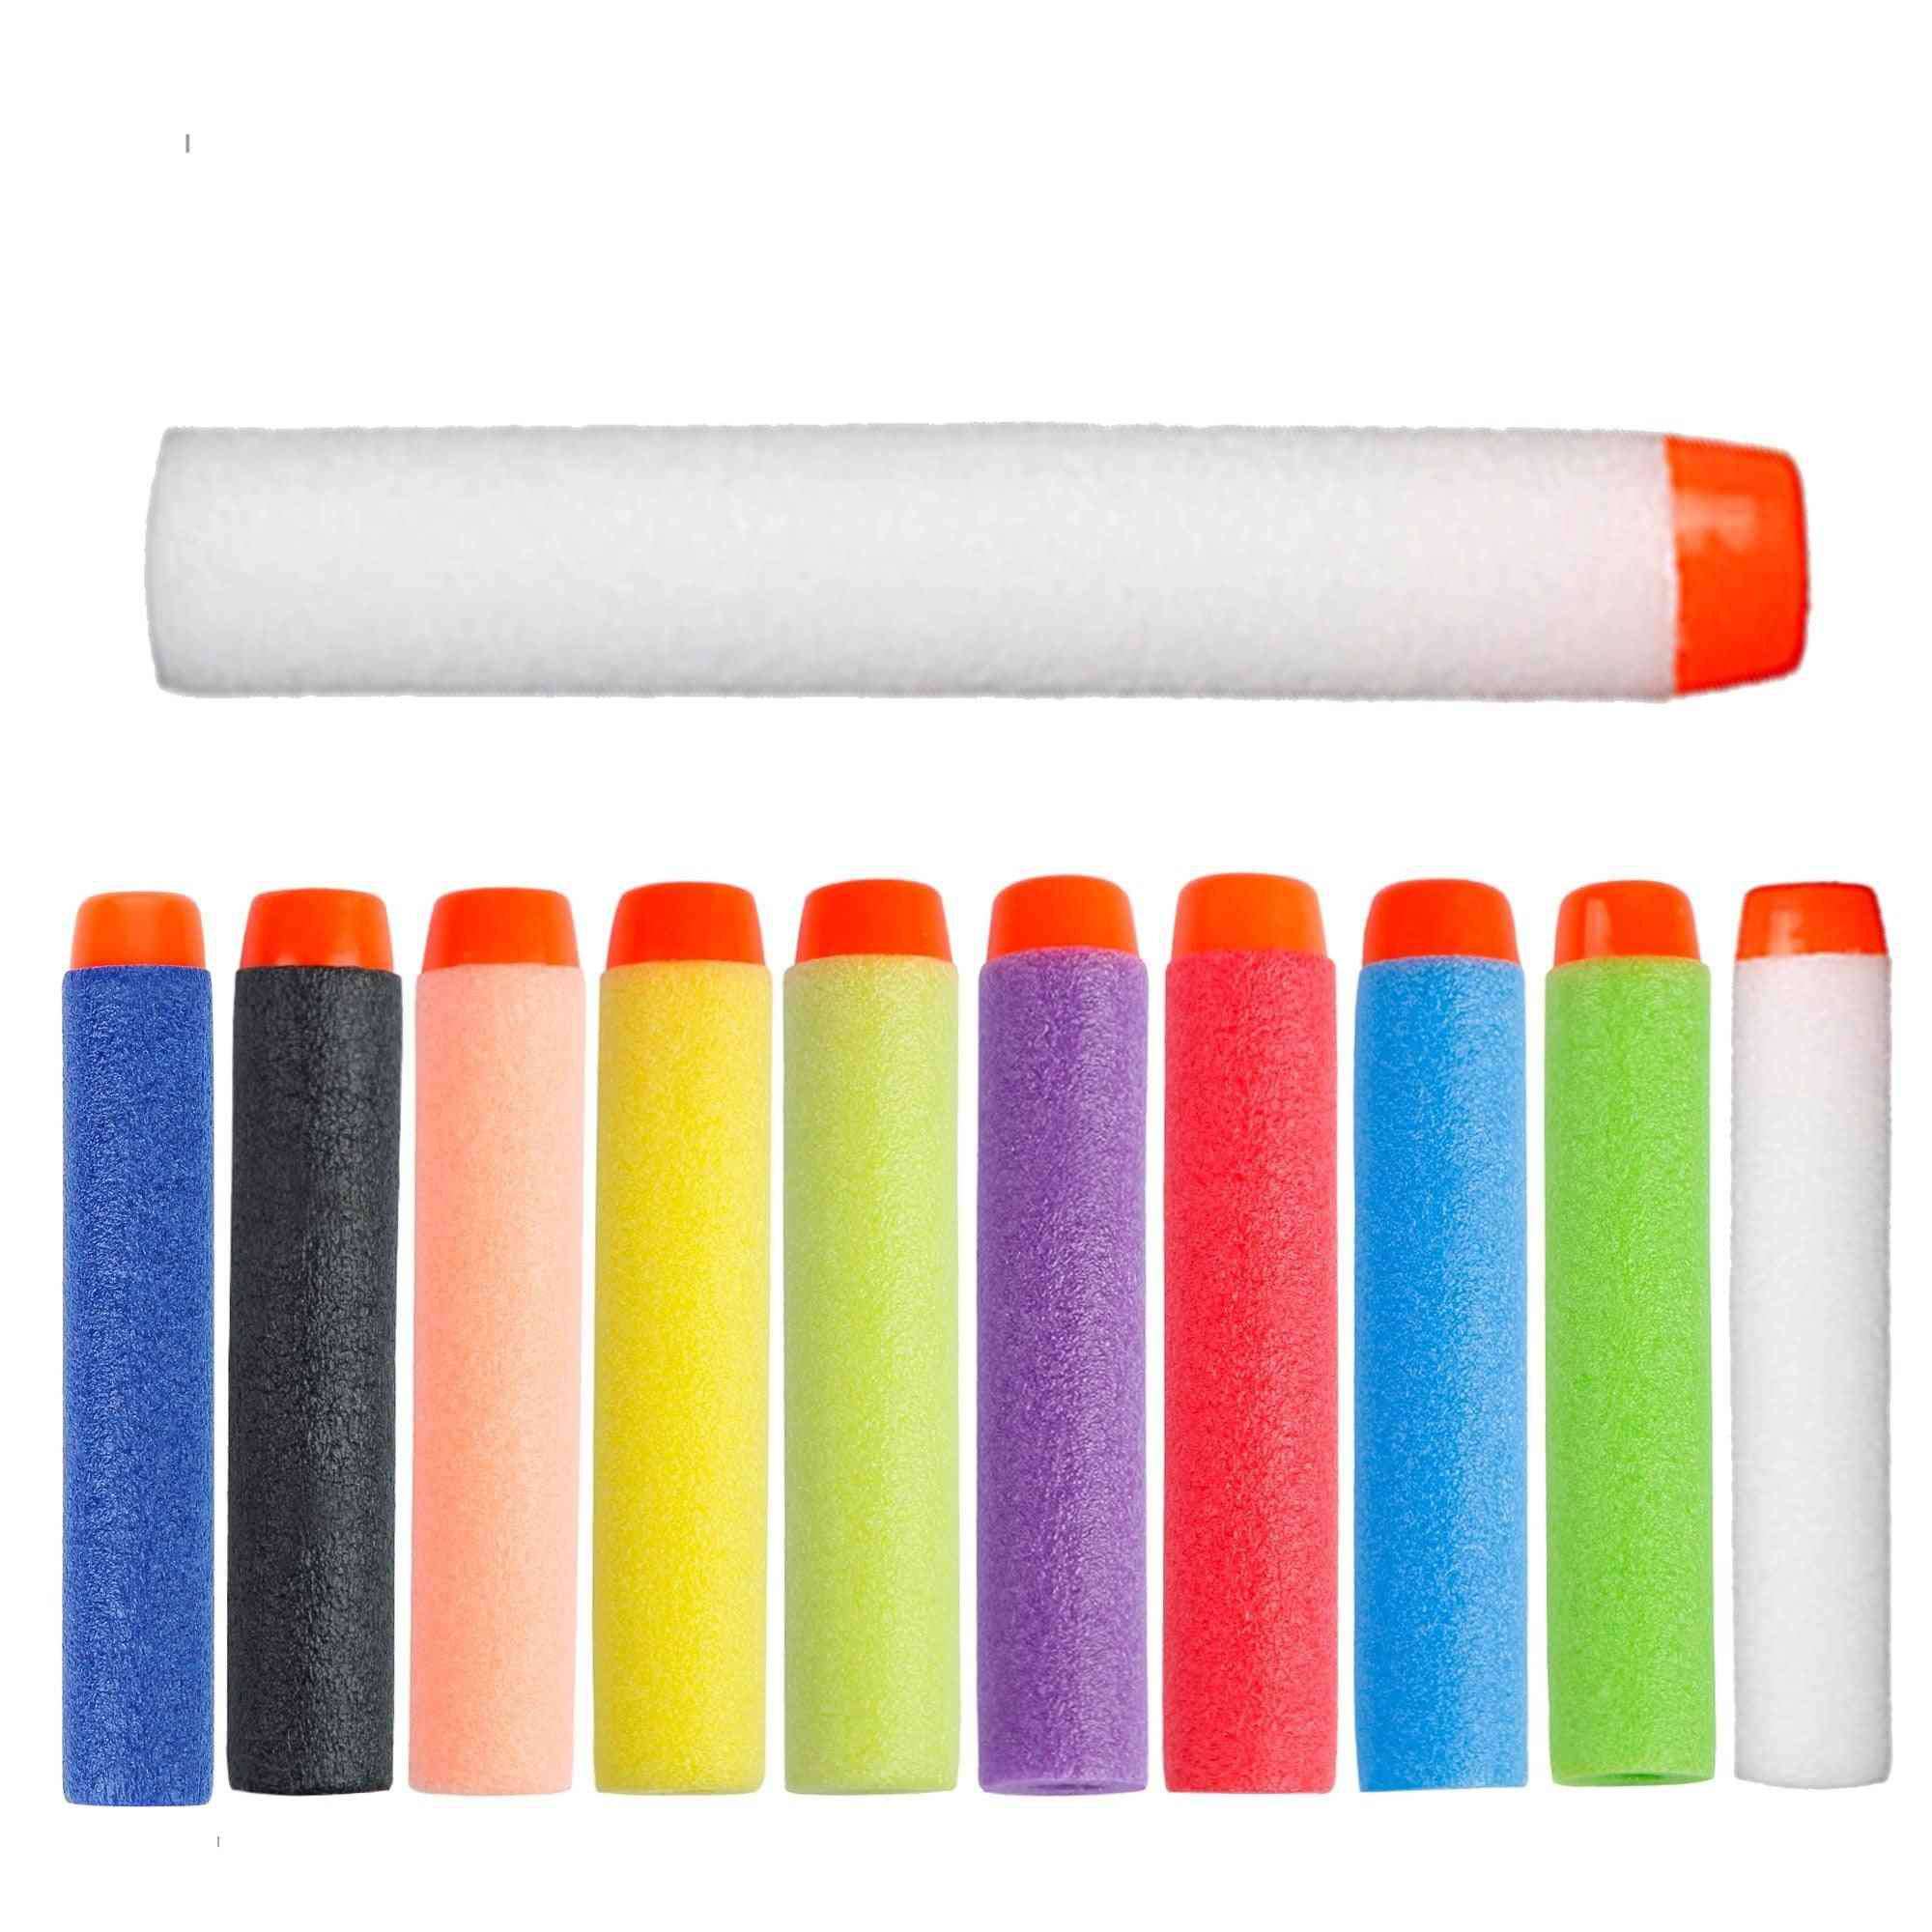 30pc Darts For Nerf Soft Hollow Hole Head Refill Darts Toy